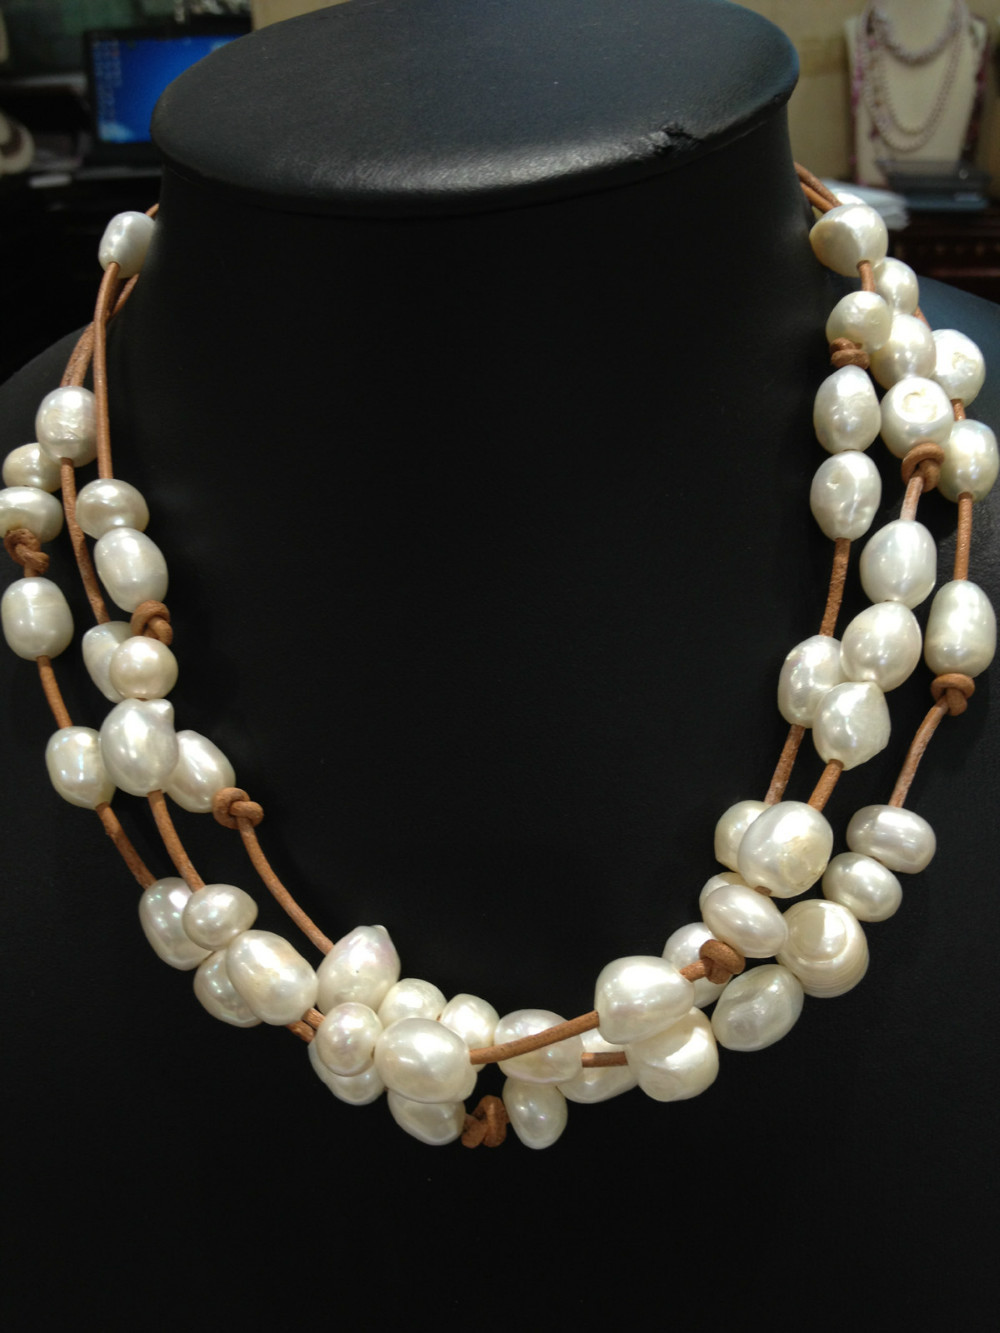 Aliexpress.com : Buy Baroque Freshwater Pearls Necklace ...